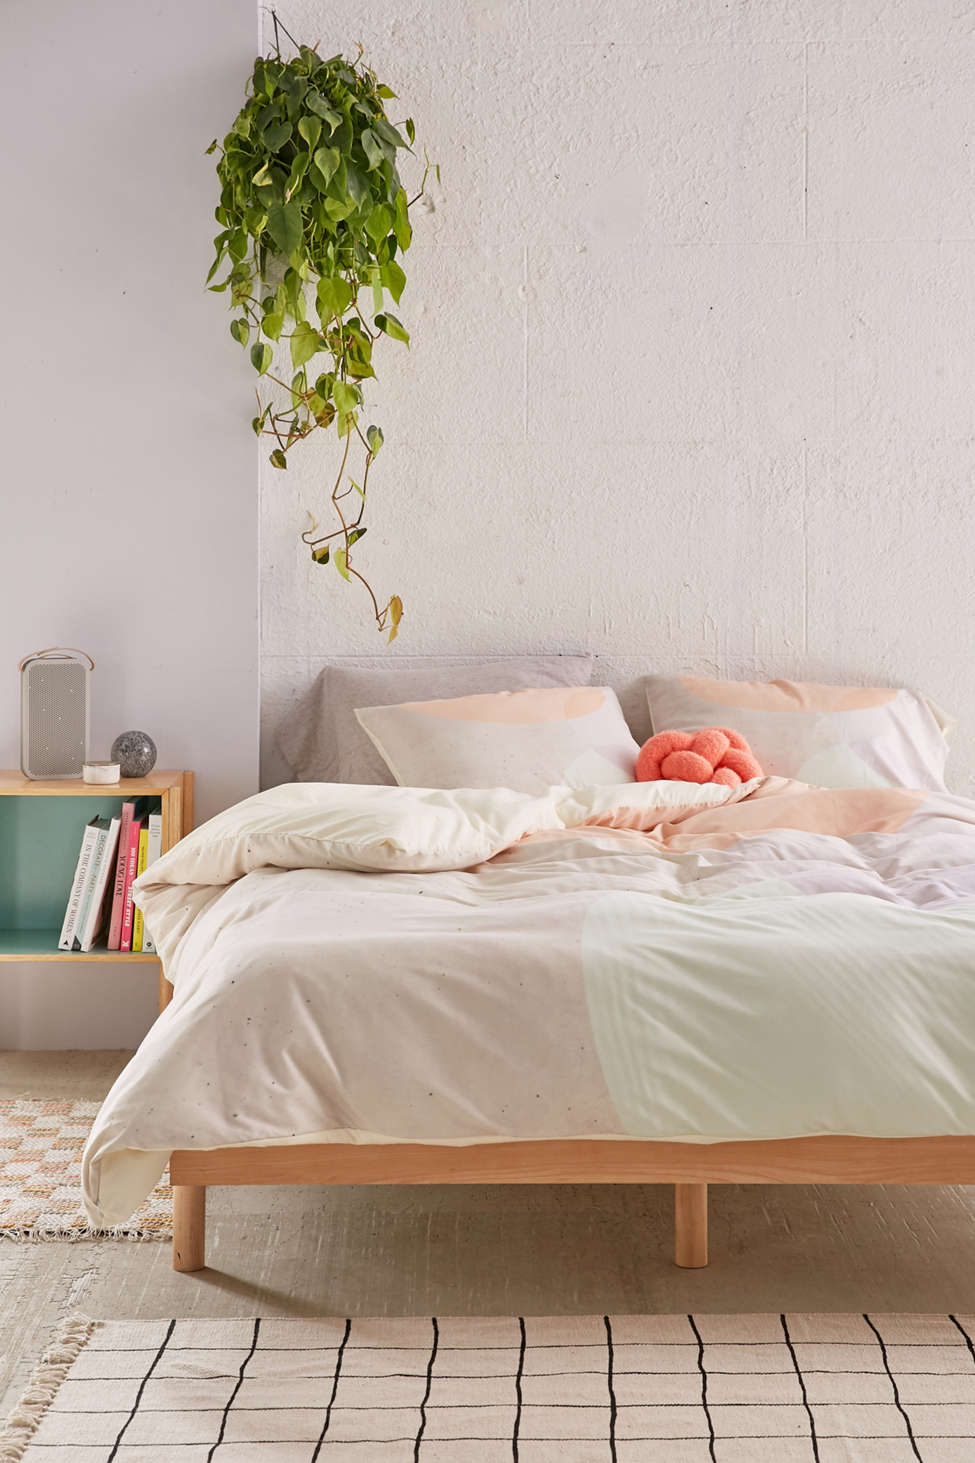 Slide View: 2: Iveta Abolina For DENY Peach Cobbler Duvet Cover